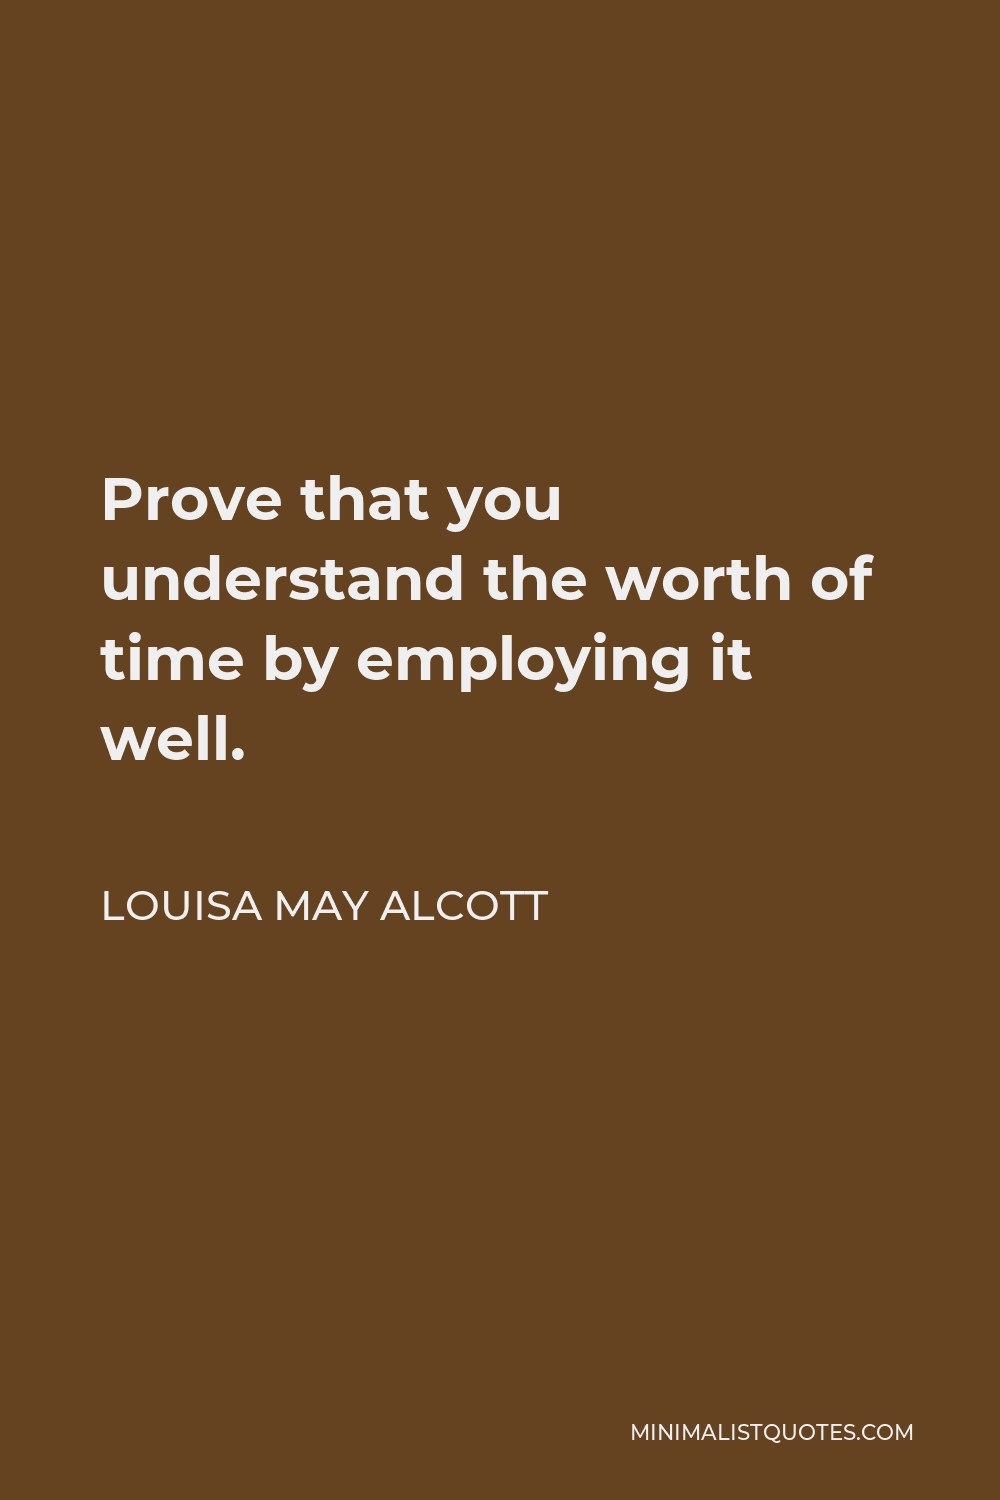 Louisa May Alcott Quote - Prove that you understand the worth of time by employing it well.